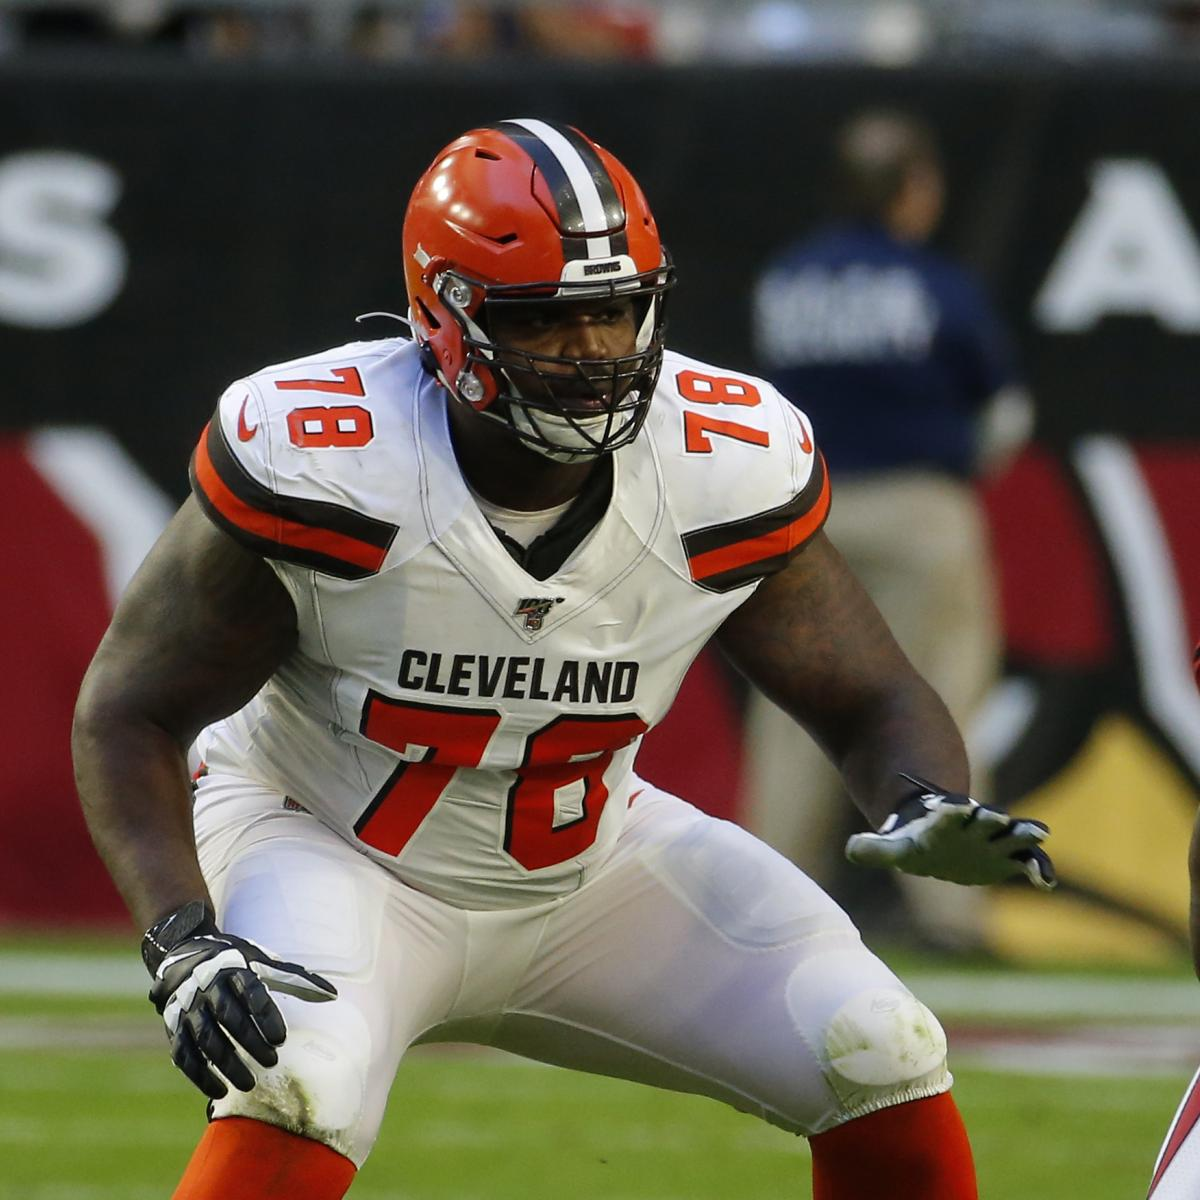 Greg Robinson Allegedly Had 157 Pounds of Marijuana in Car at Time of Arrest